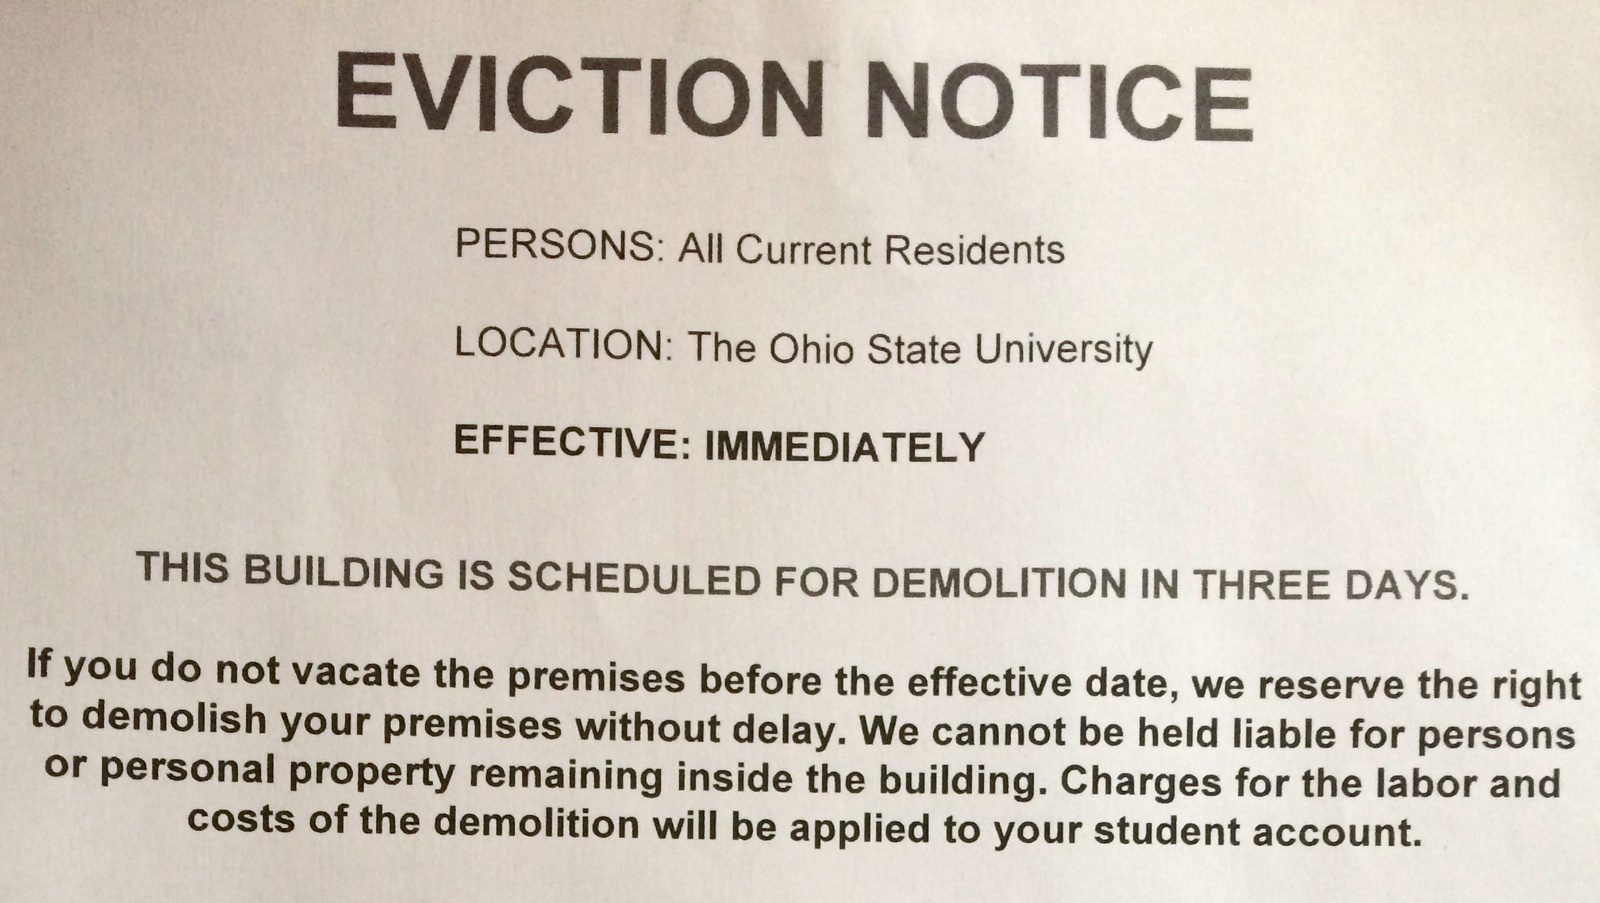 Fake Off Campus Eviction Notices Aim To Raise Awareness